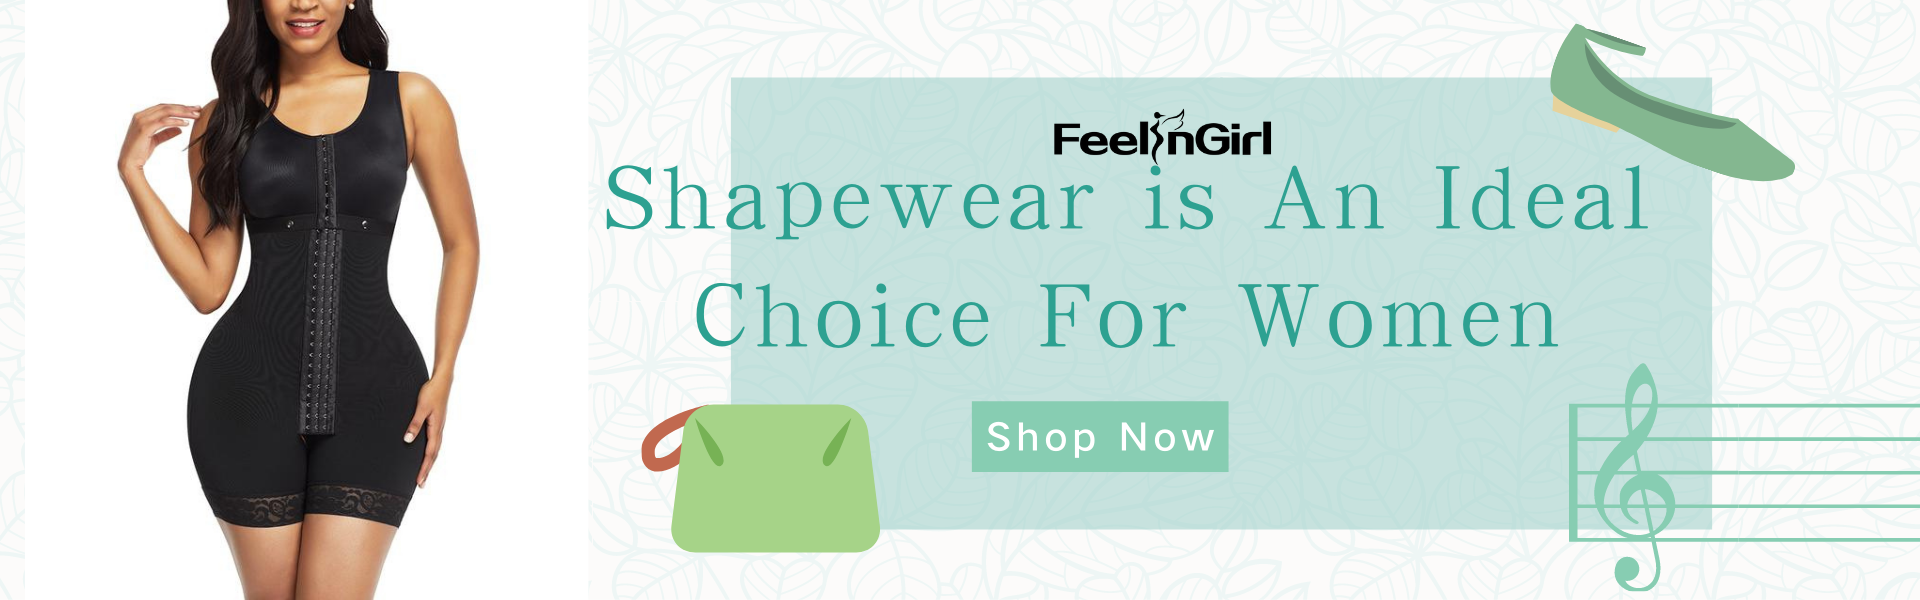 Shapewear is An Ideal Choice For Women